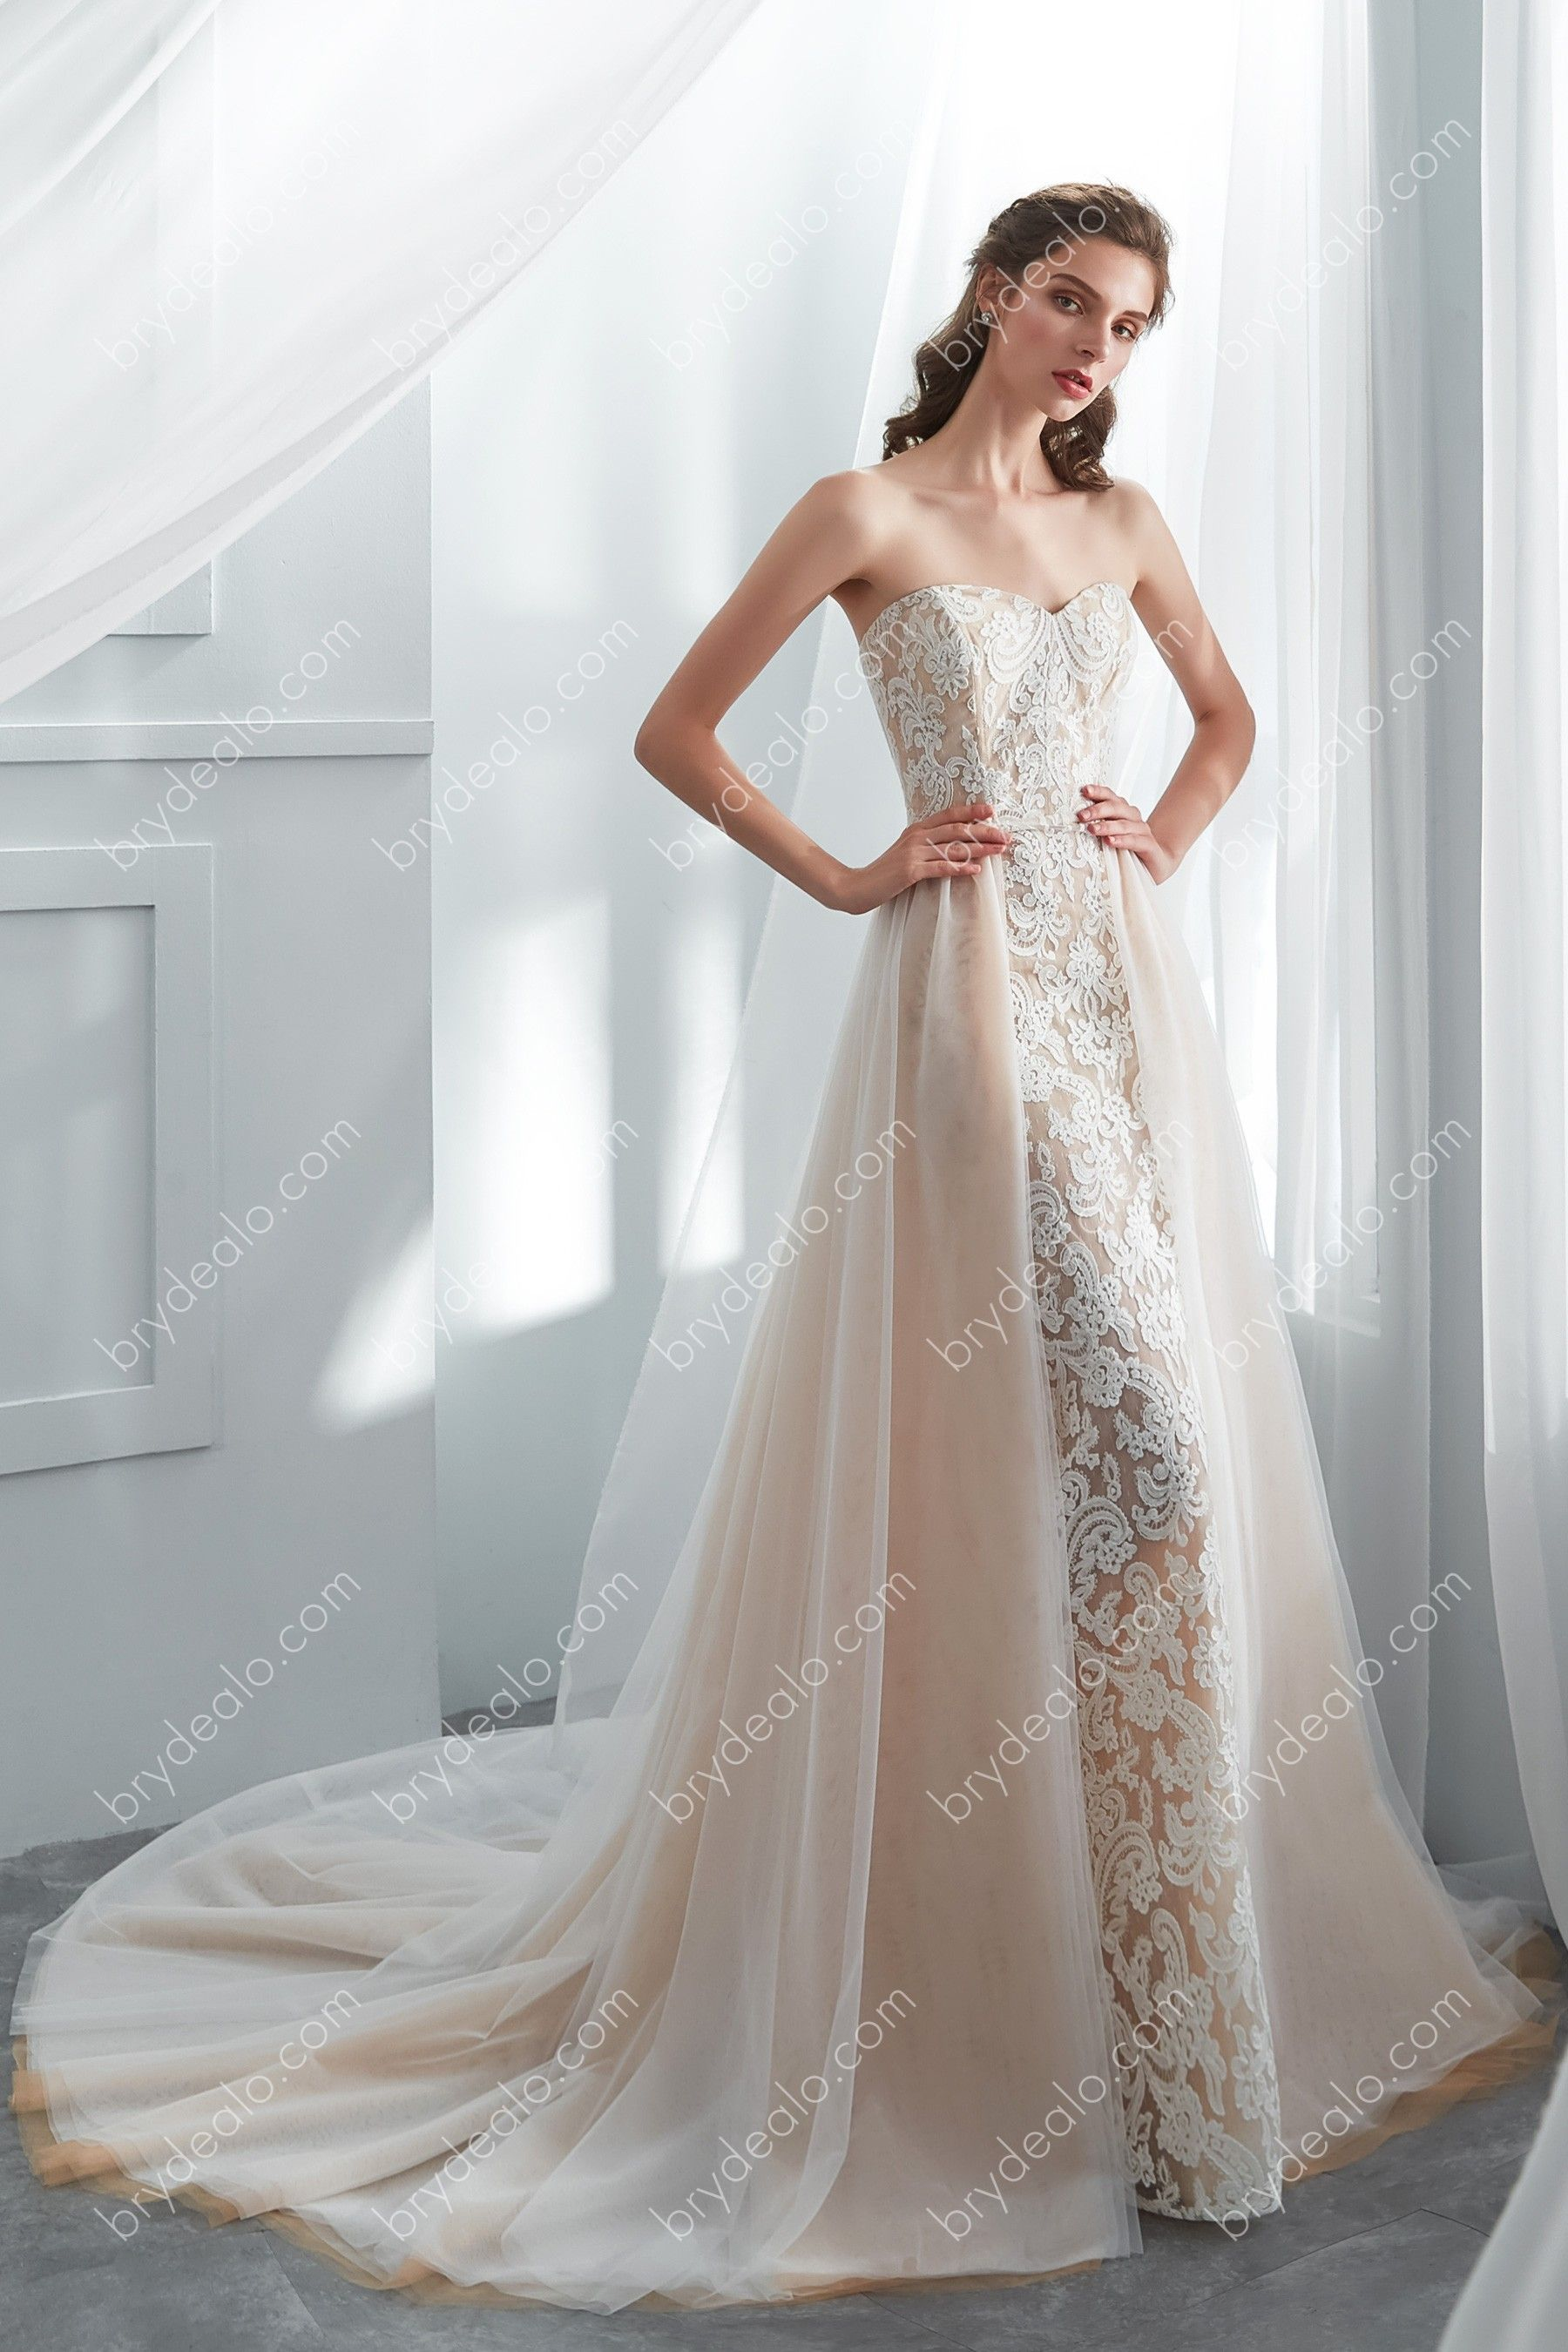 Wearing A Modern Slim Fit Mermaid Champagne Wedding Gown Makes The Look Of Your Own Graceful Lace Spre Sheer Wedding Dress Wedding Gowns Mermaid Wedding Gowns [ 2700 x 1800 Pixel ]